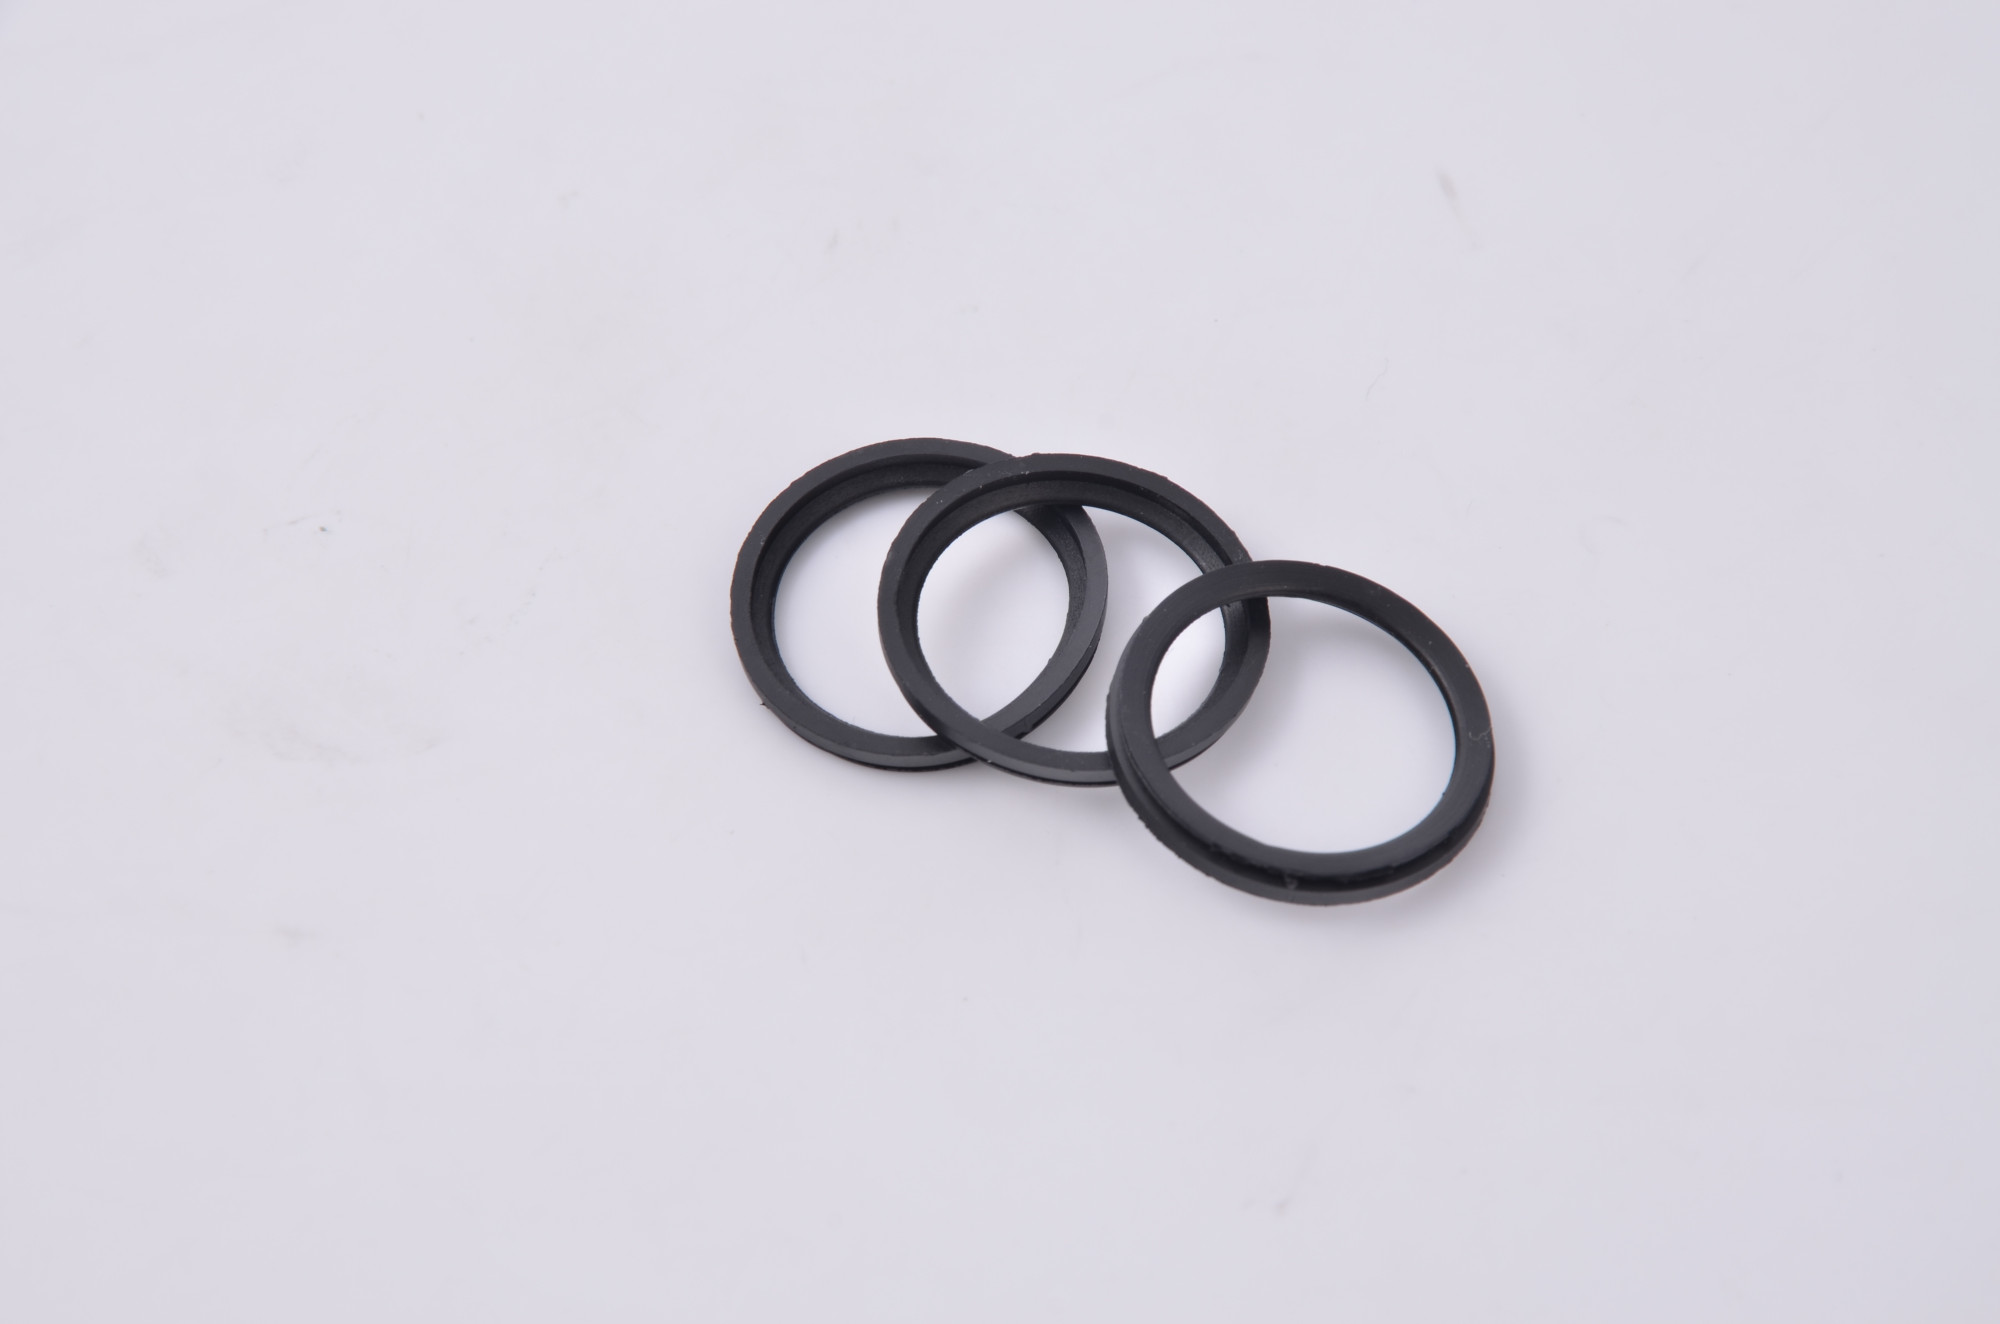 Rubber metal mixing parts Manufacturers, Rubber metal mixing parts Factory, Rubber metal mixing parts